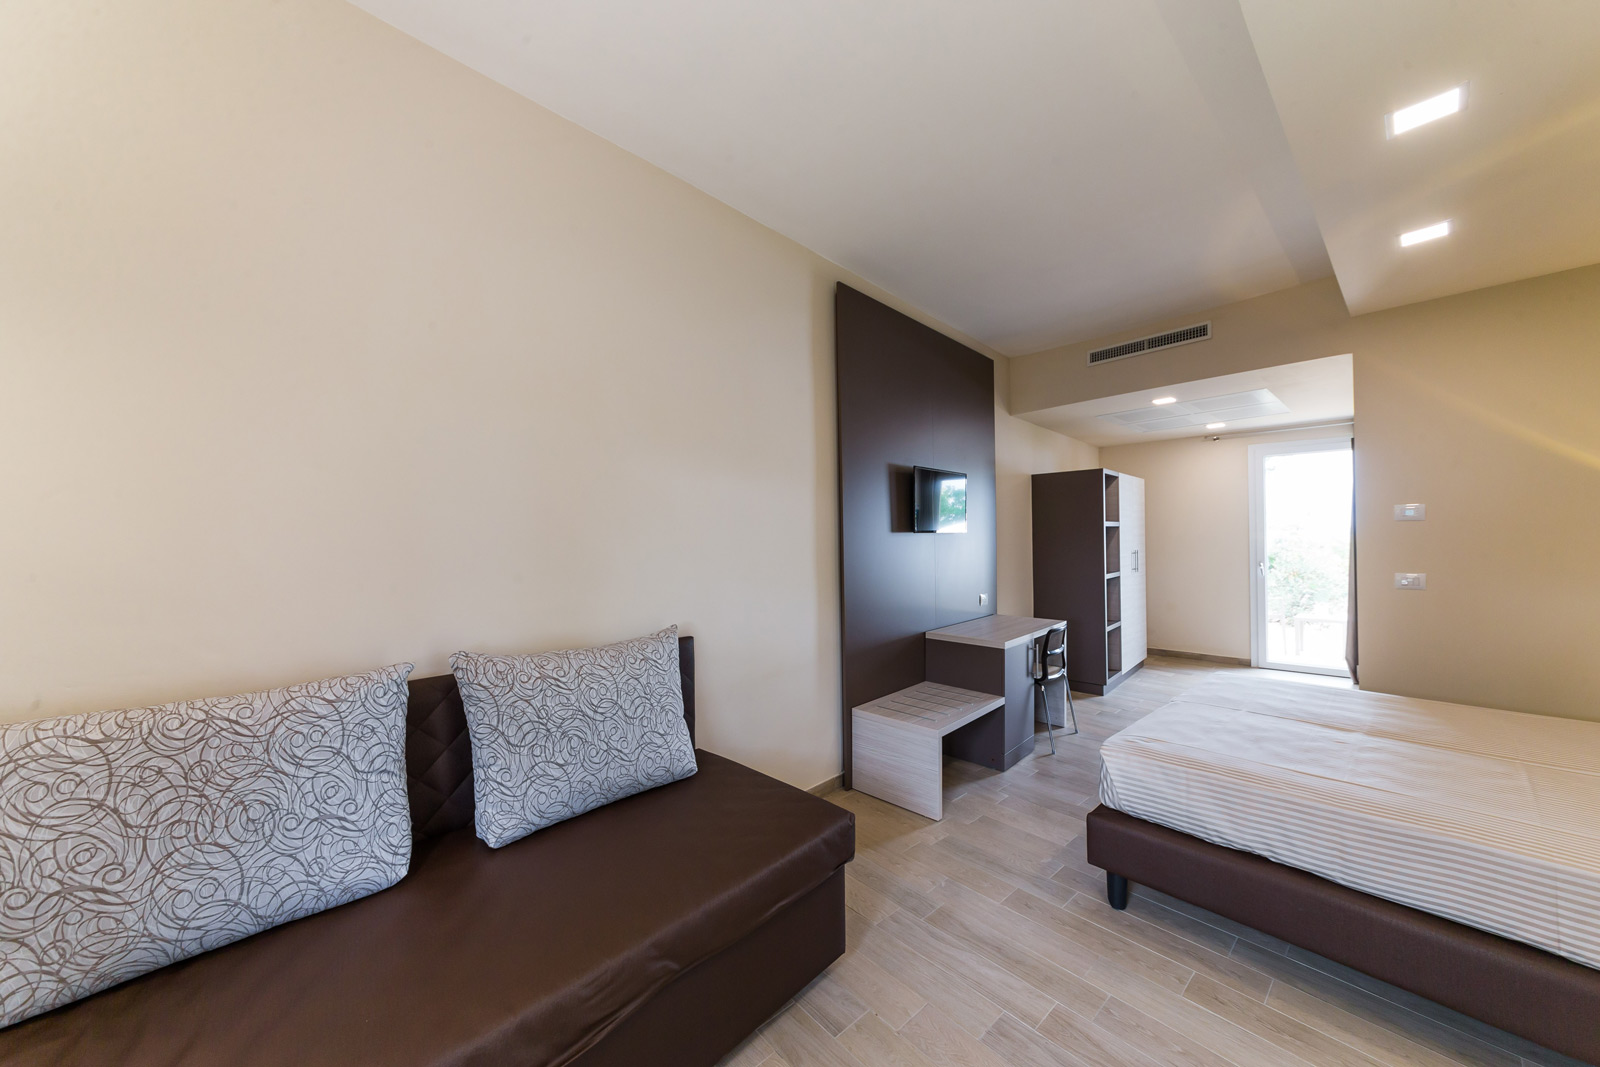 Suite at Torre Cintola